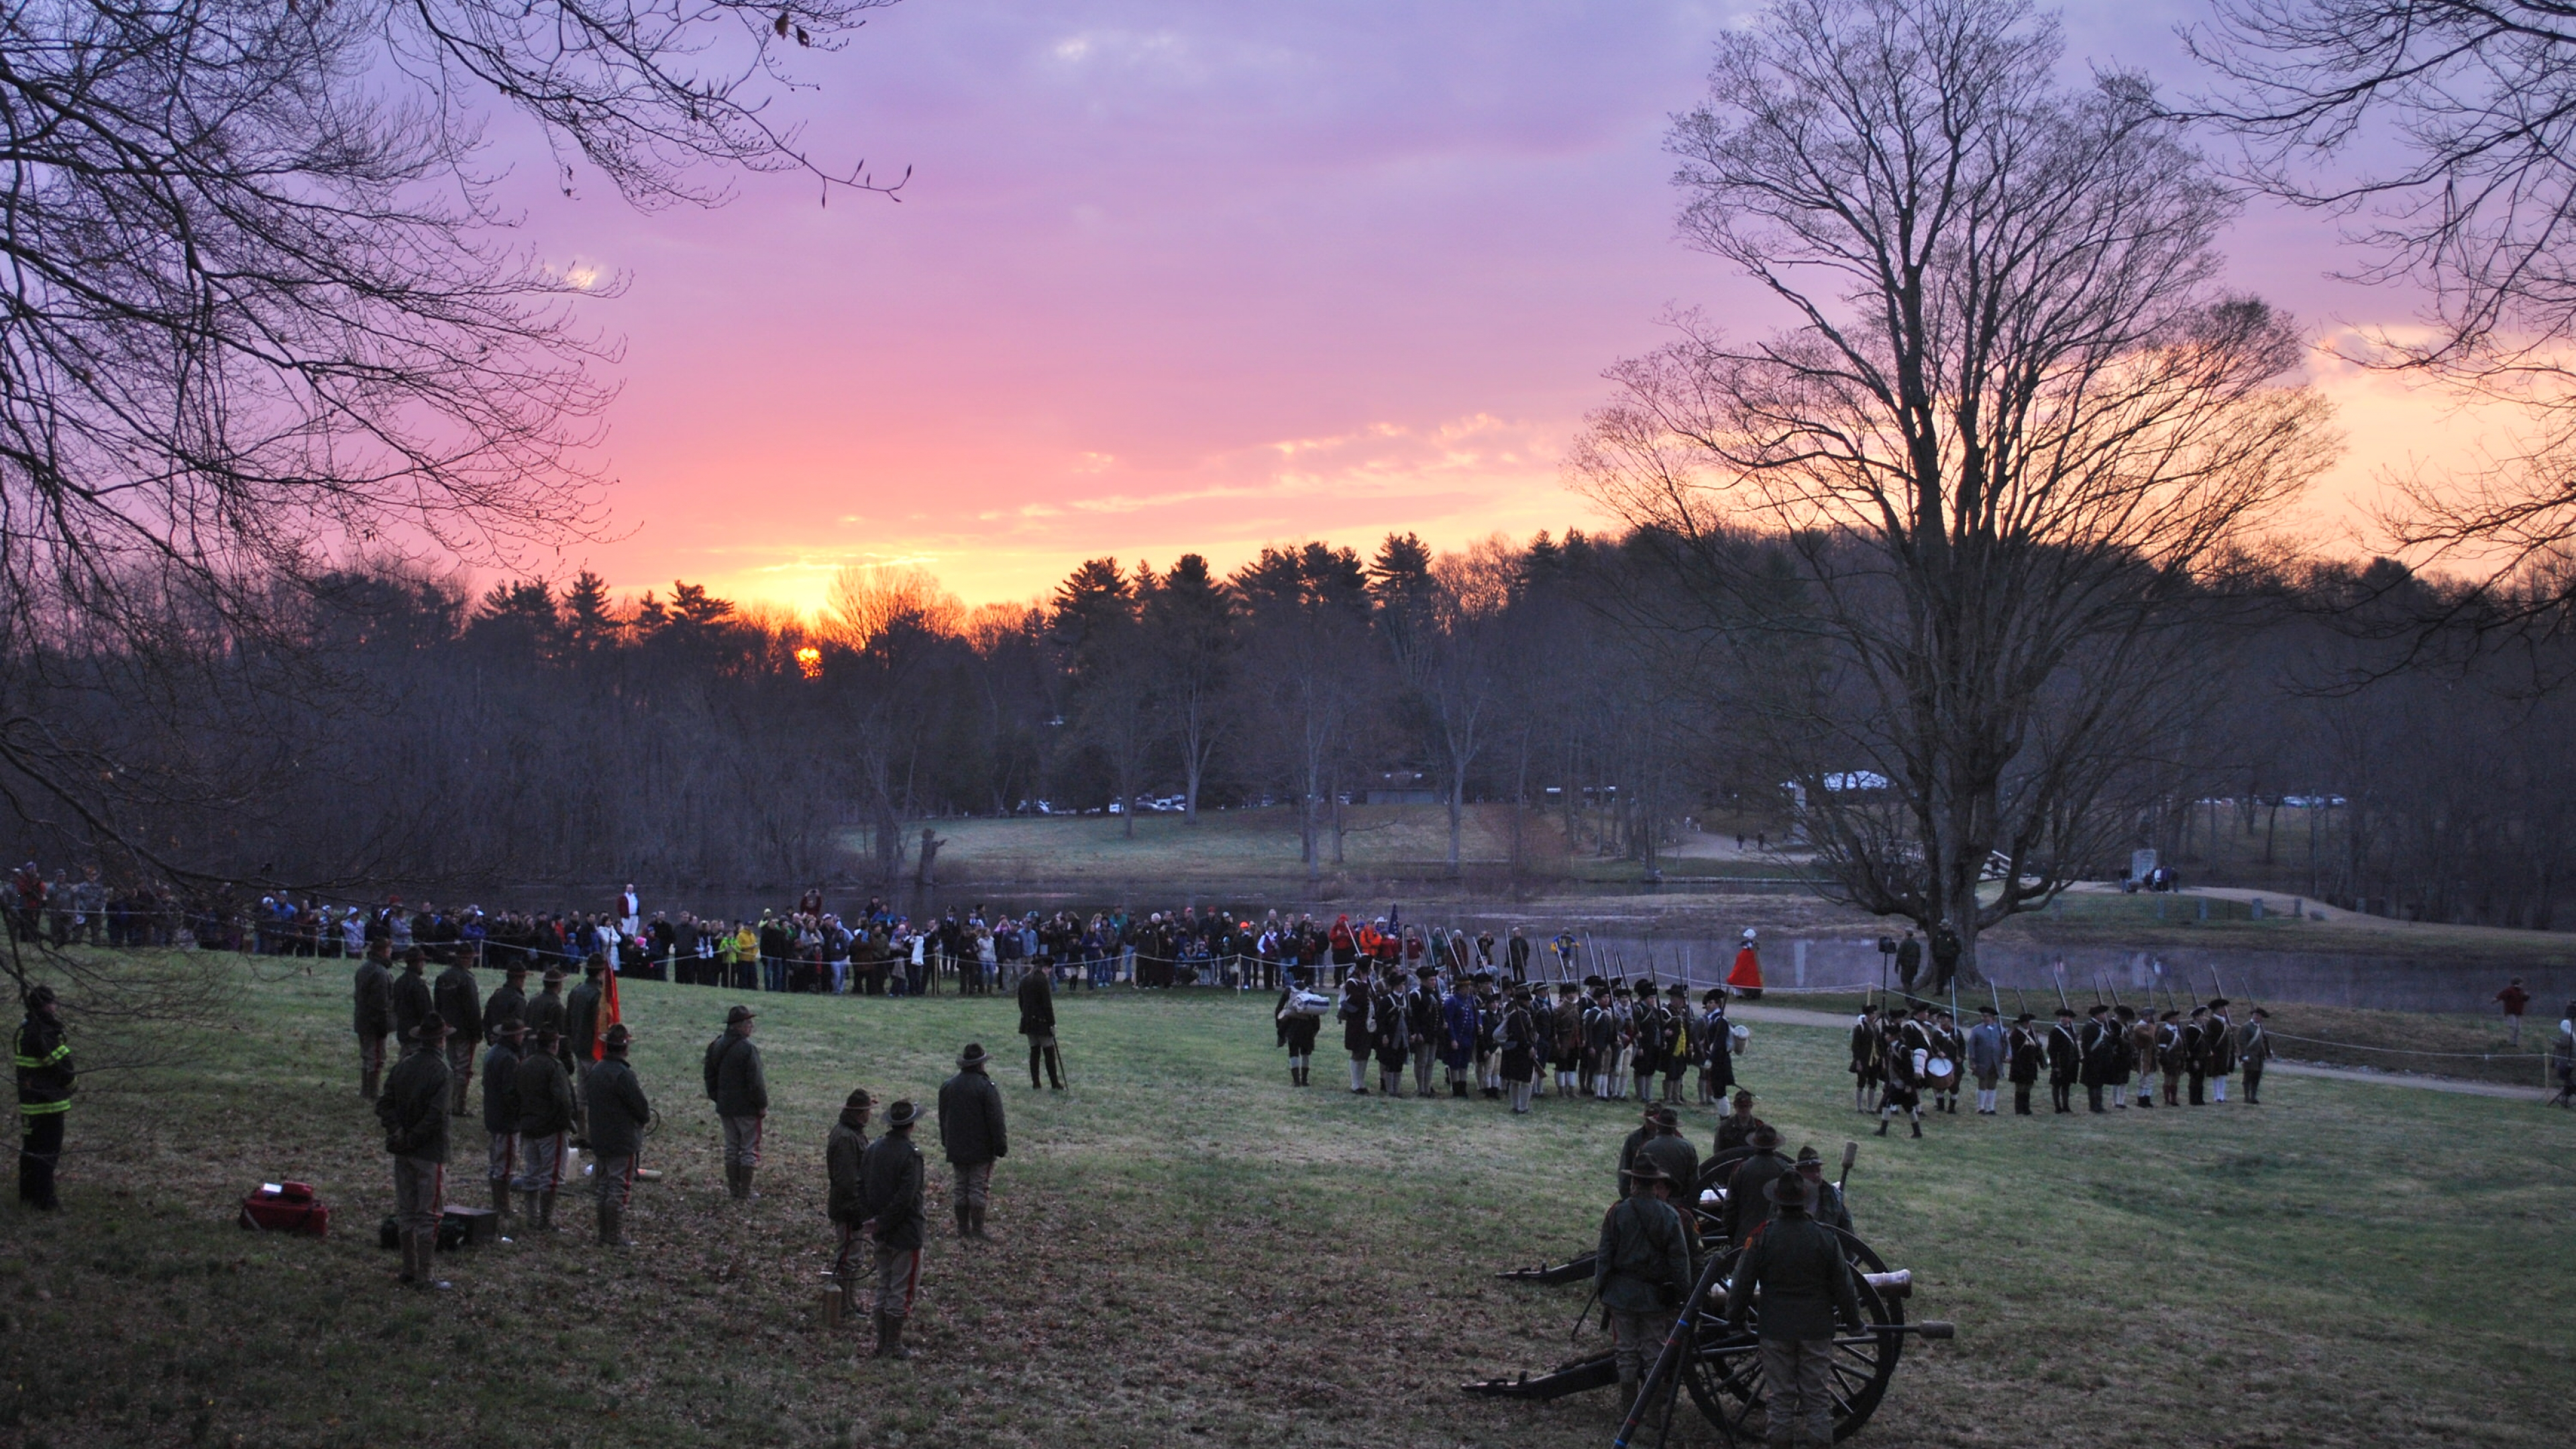 The Concord Independent Battery and Captain Brown's Company stand at attention at dawn at Minute Man National Historical Park